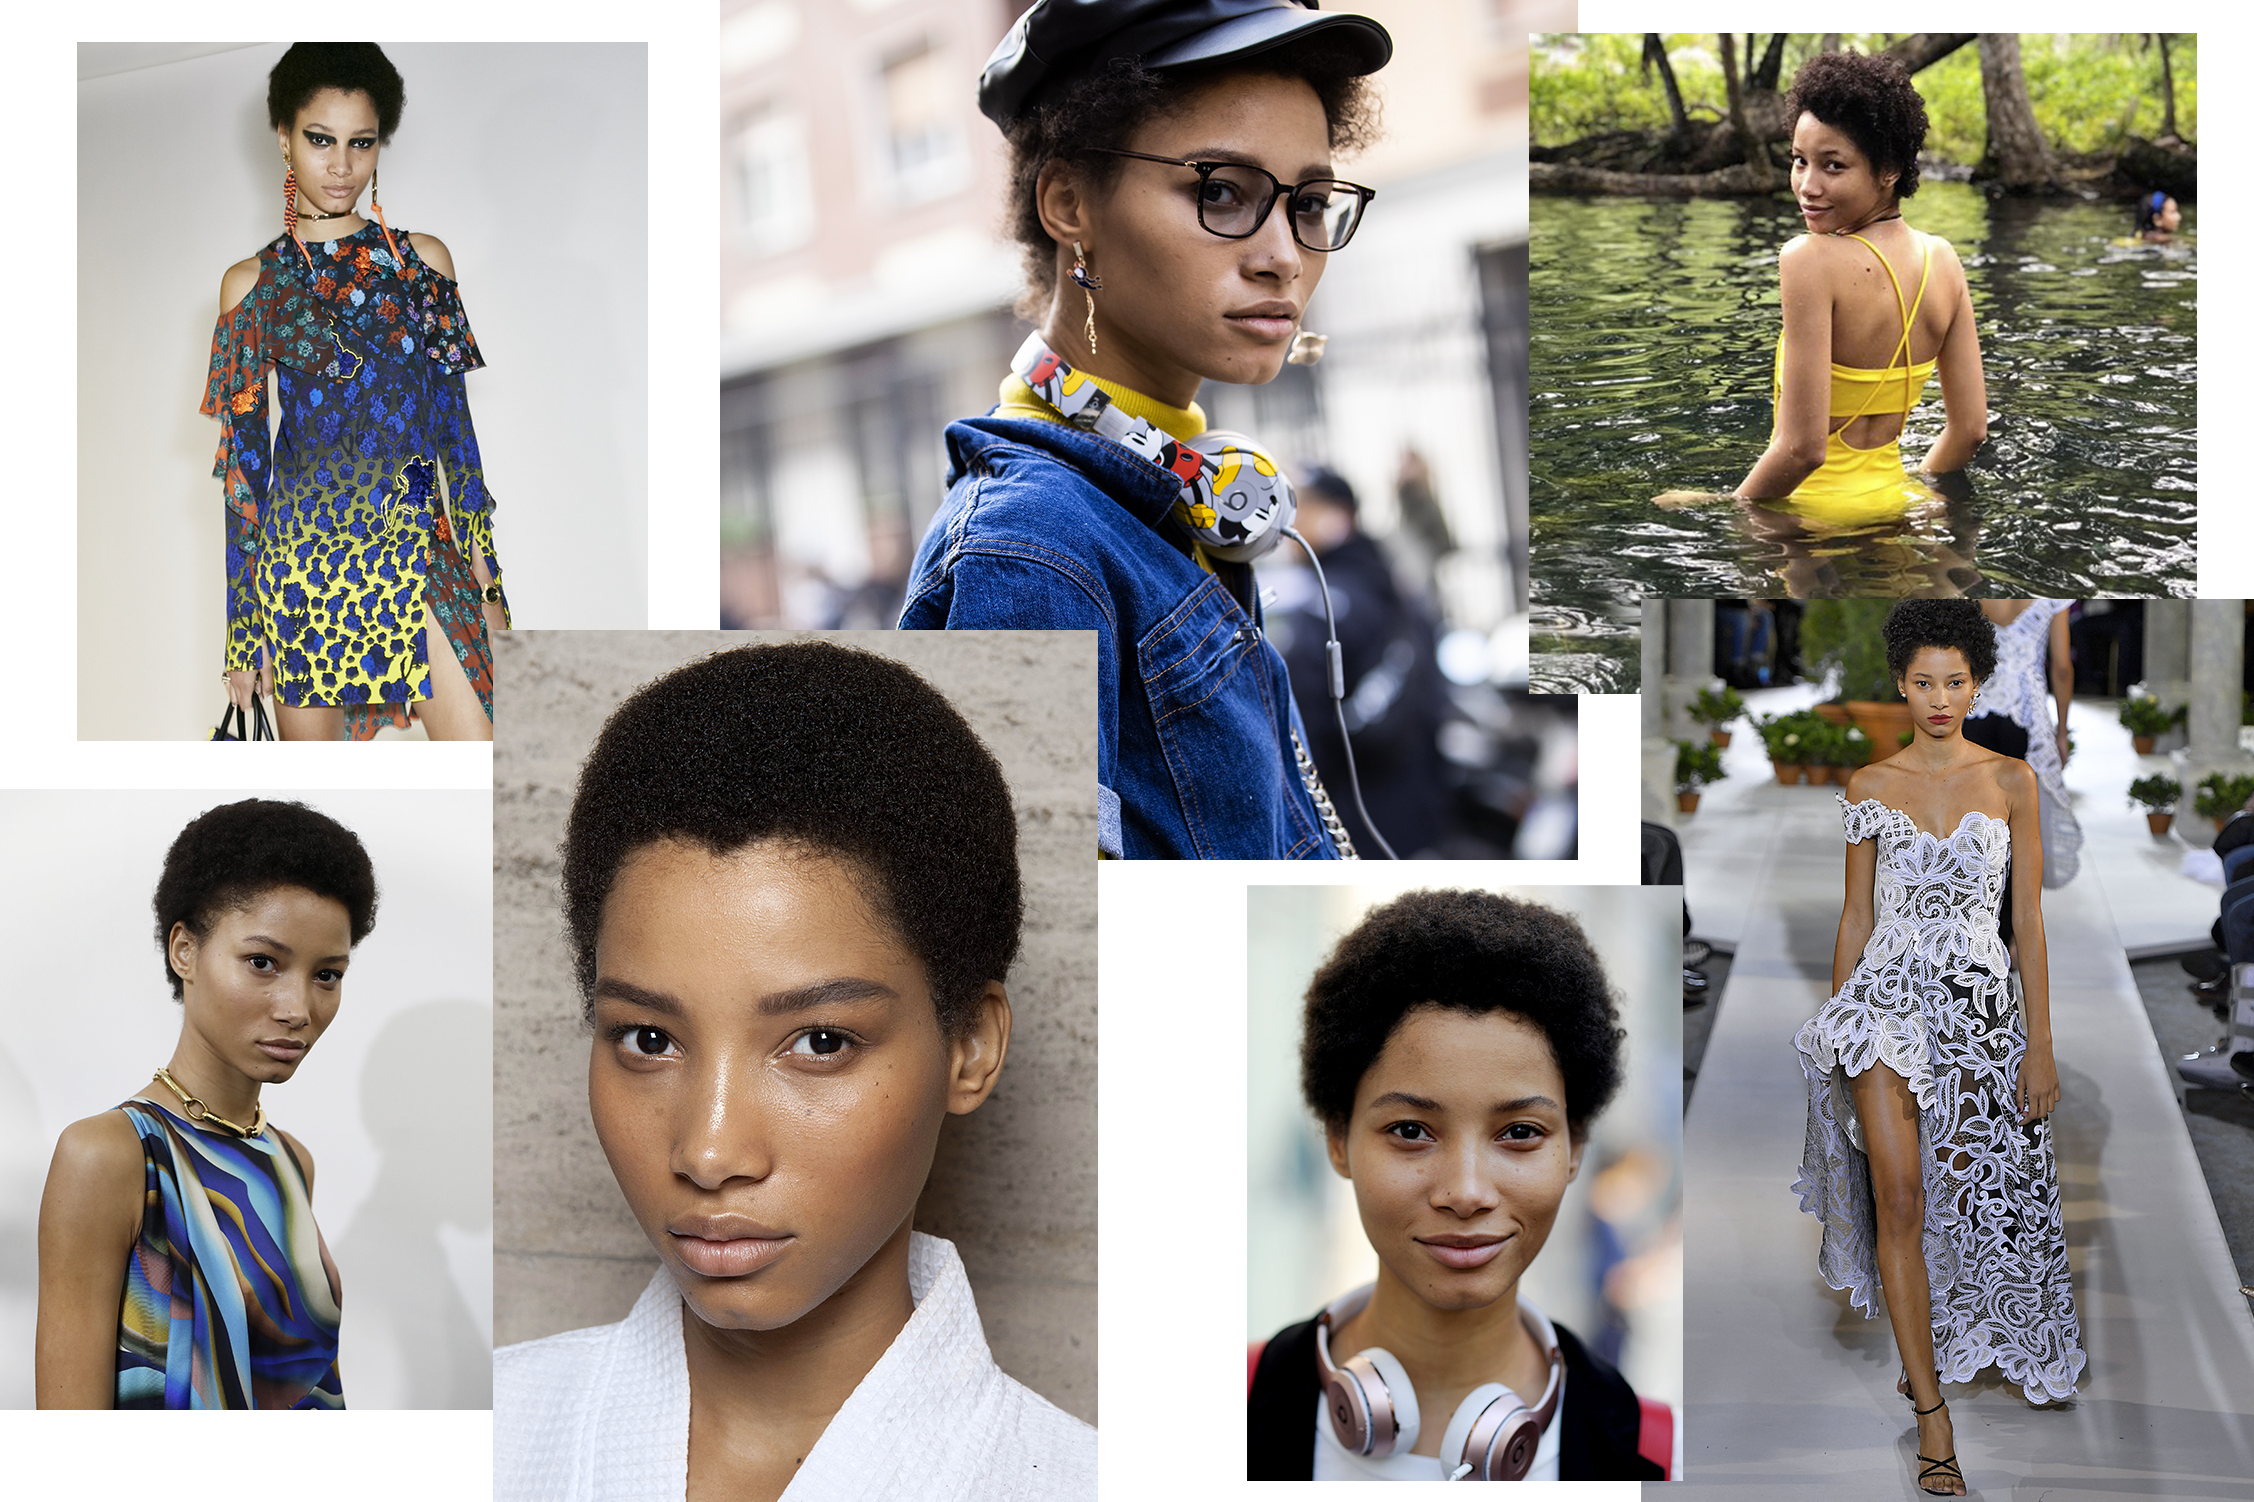 Lineisy Montero Everything You Need To Know About The Model Porter